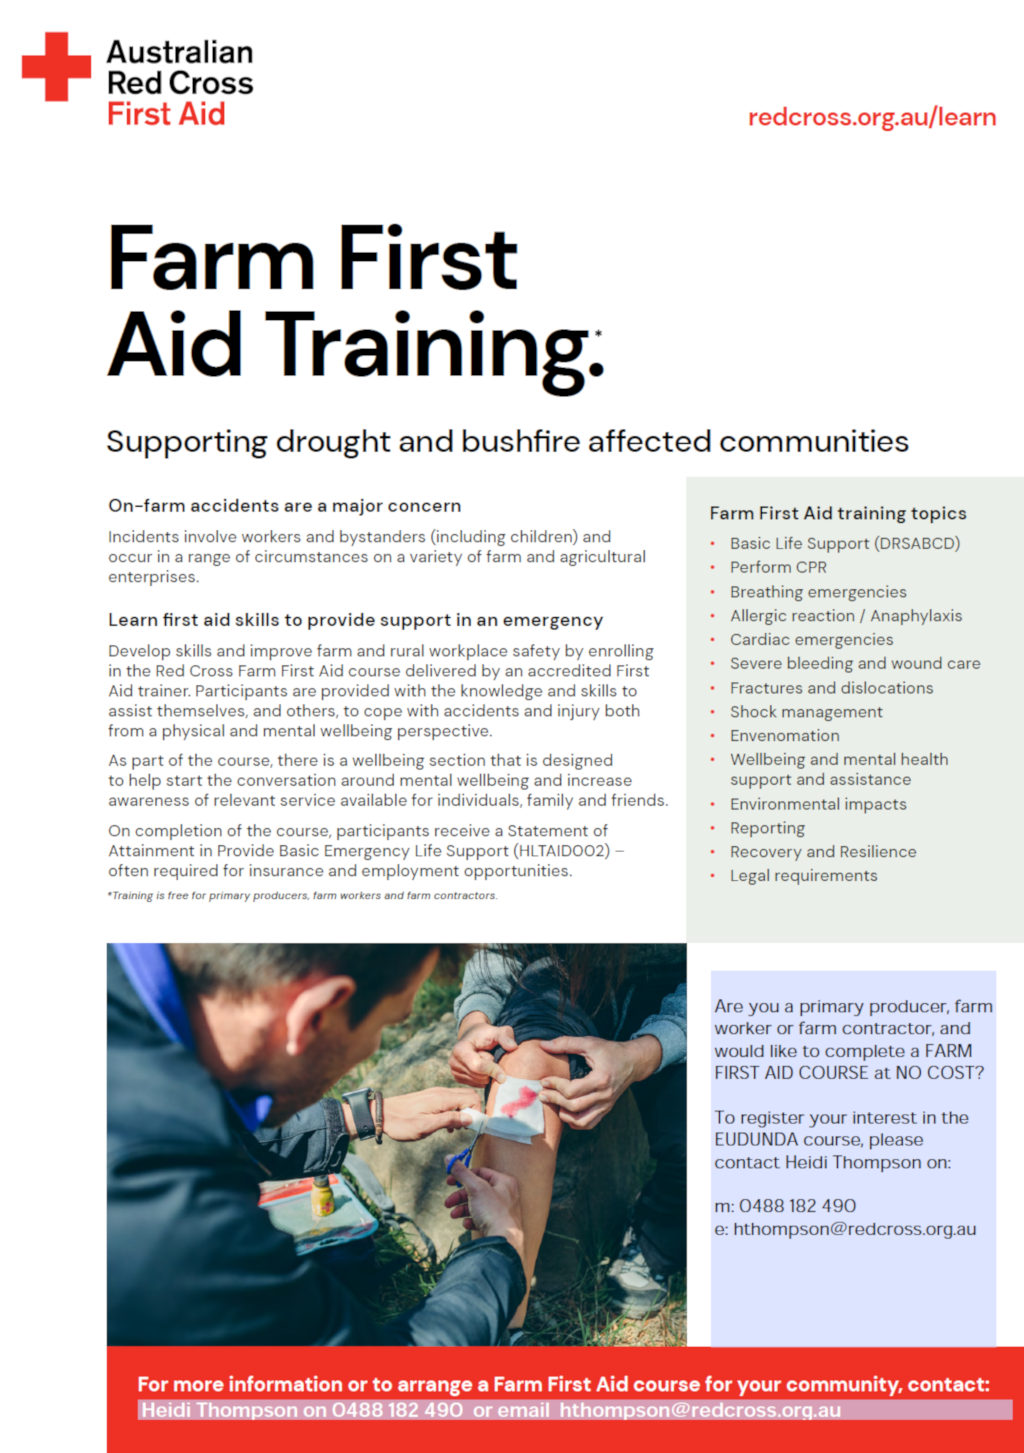 Red Cross Farm First Aid Training Available - Announced April 2021